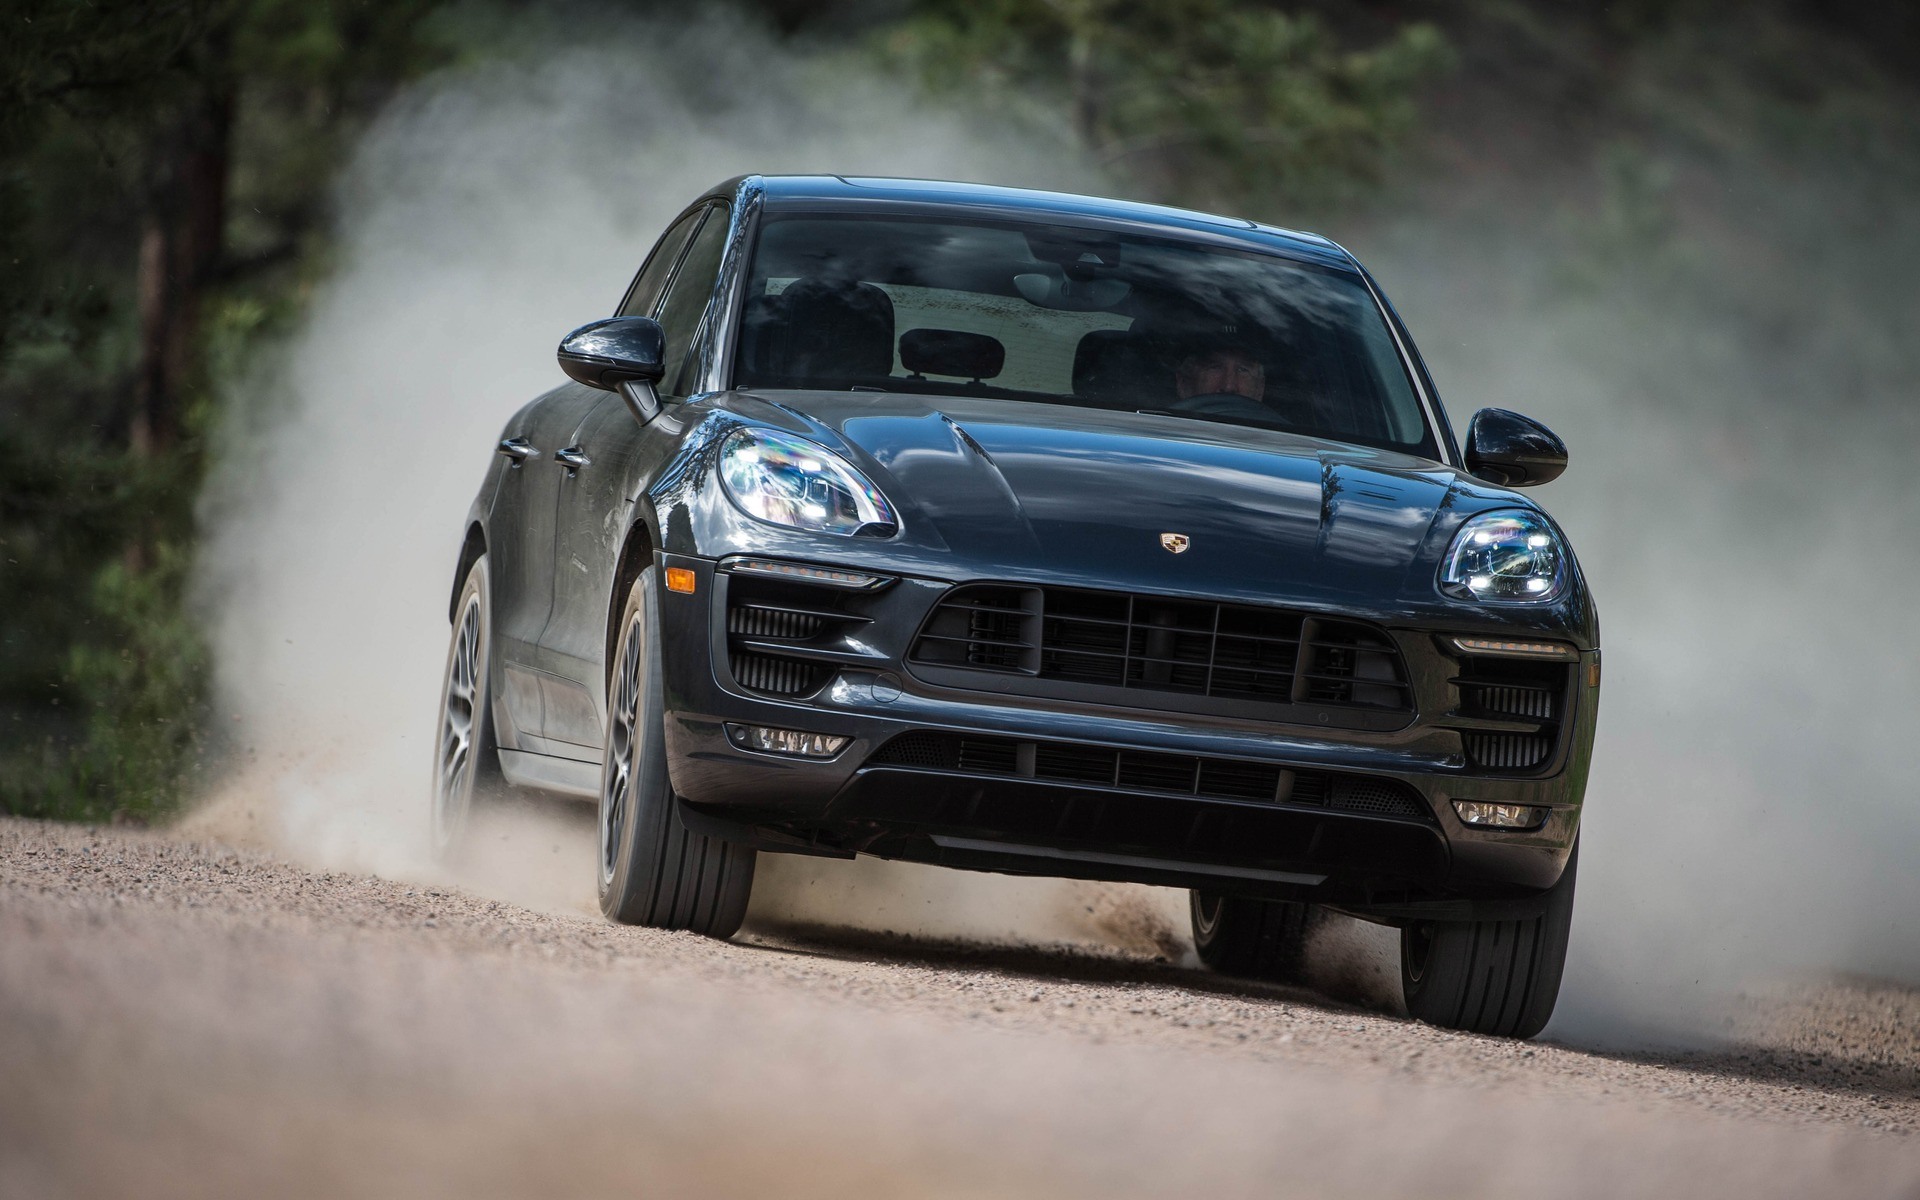 Voluntary Recall For Porsche Macan Models The Car Guide Fuel Filter Repairing Flange Of Pump